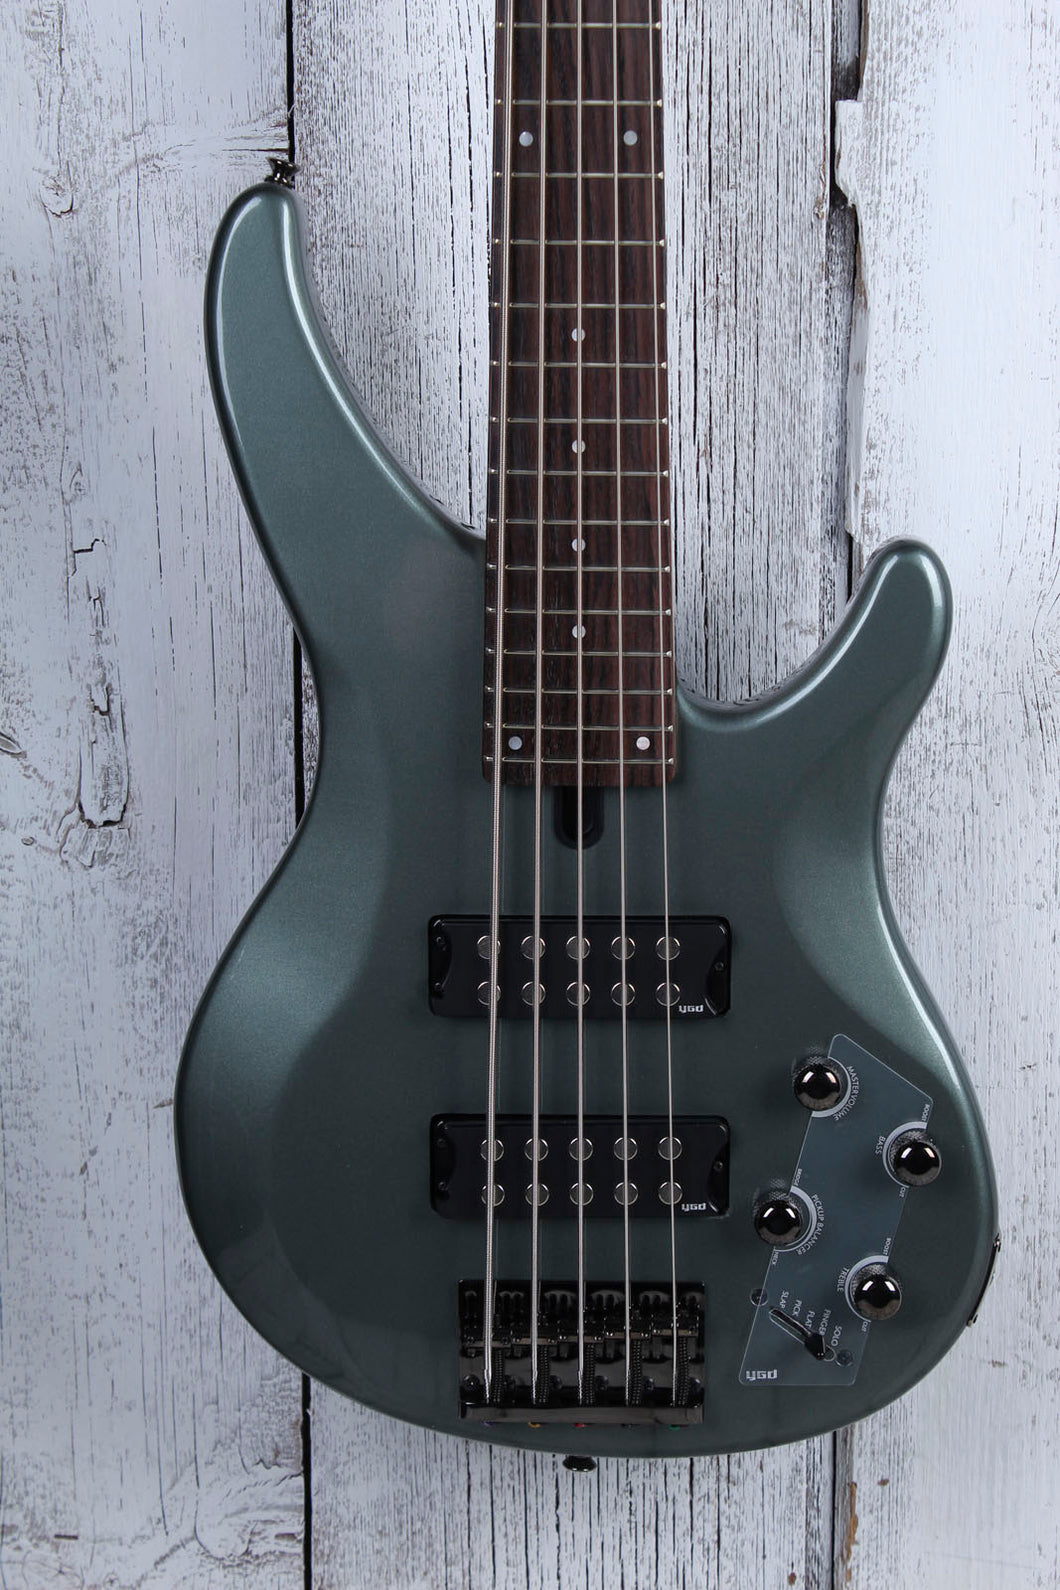 Yamaha 5 String Electric Bass Guitar with EQ Active Circuitry TRBX305 Mist Green